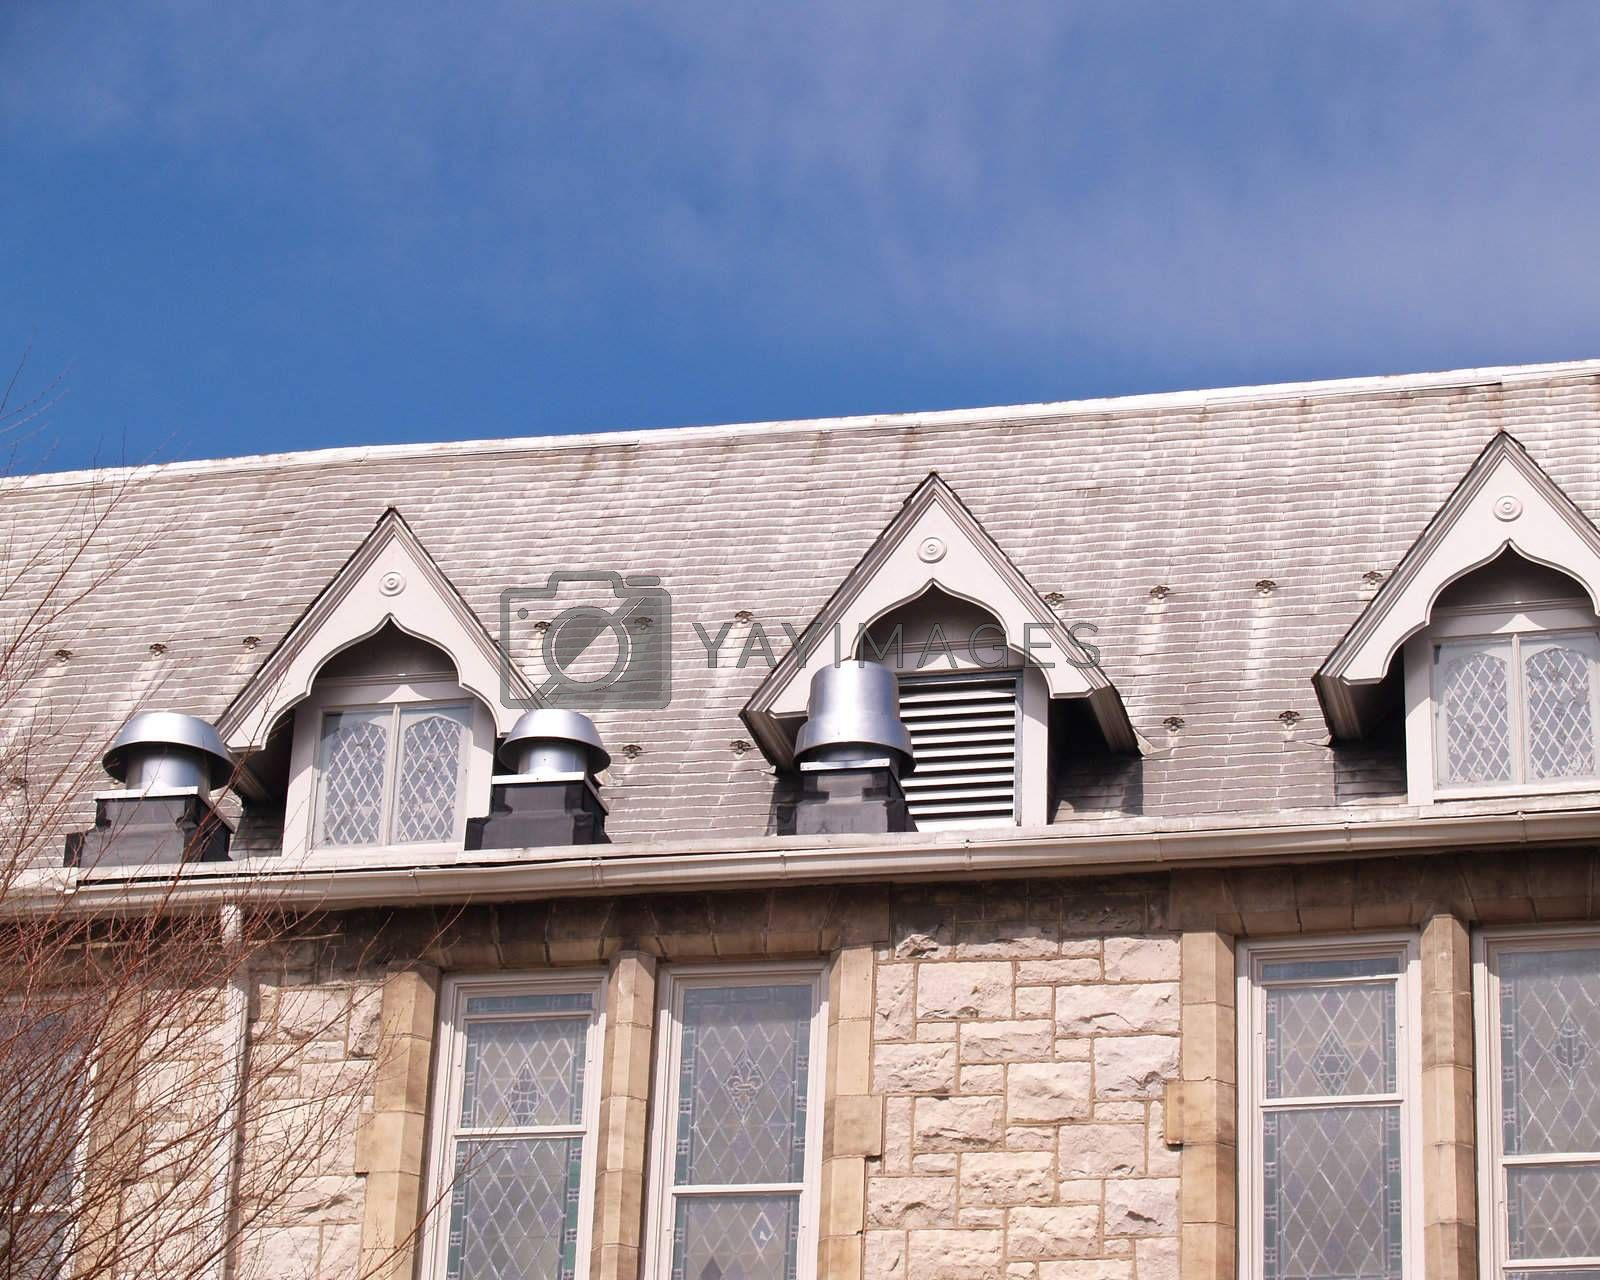 roof on an old stone building